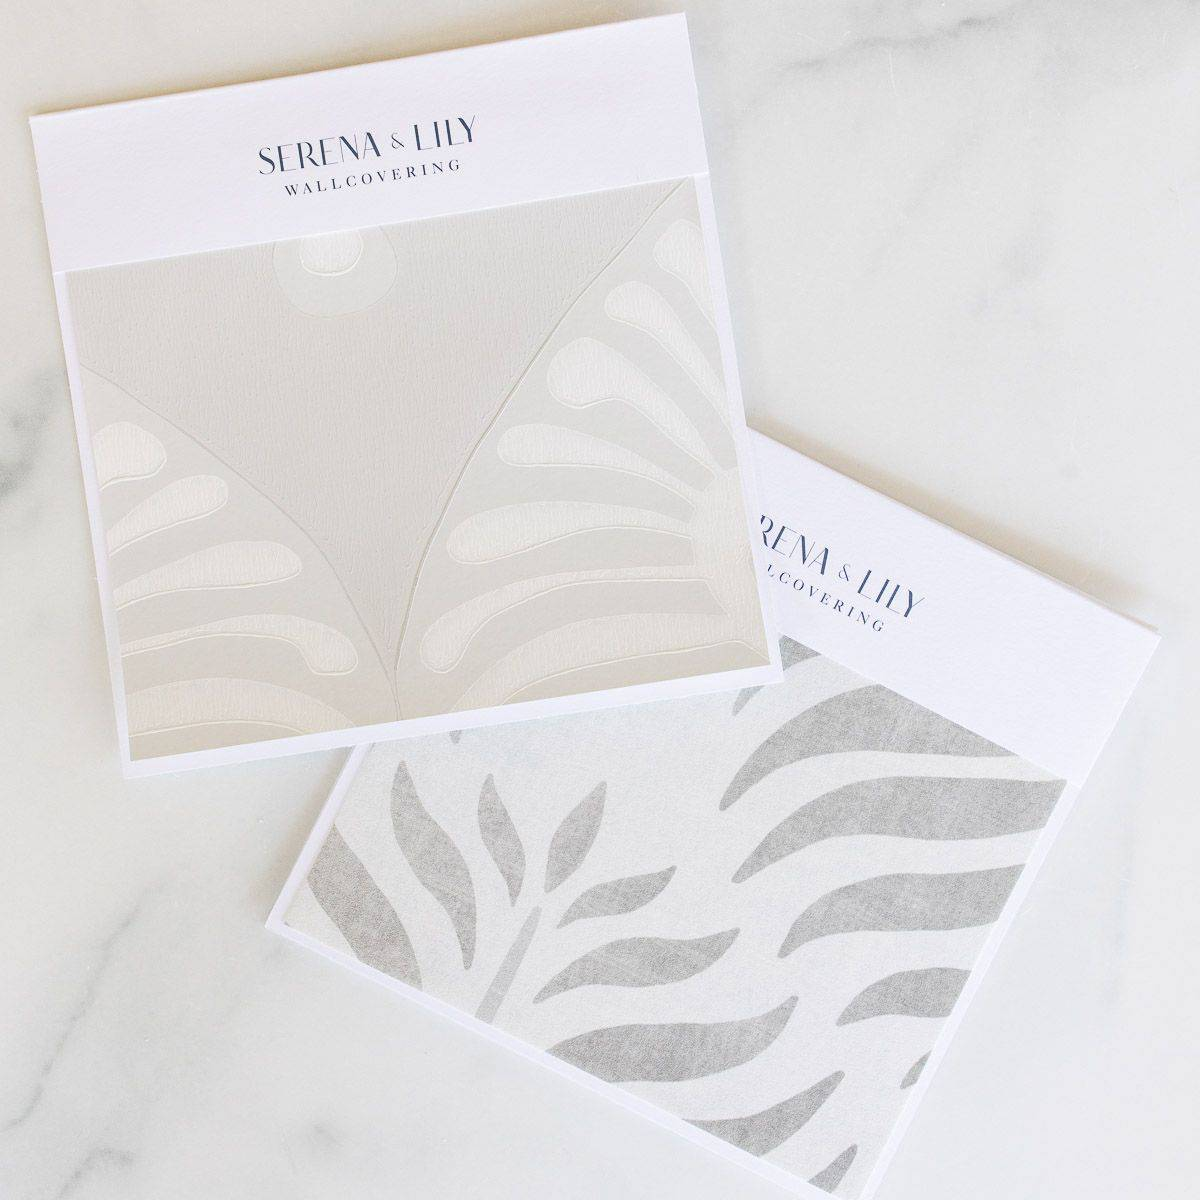 Two neutral patterned Serena and LIly wallpapers laid out on a white marble surface.